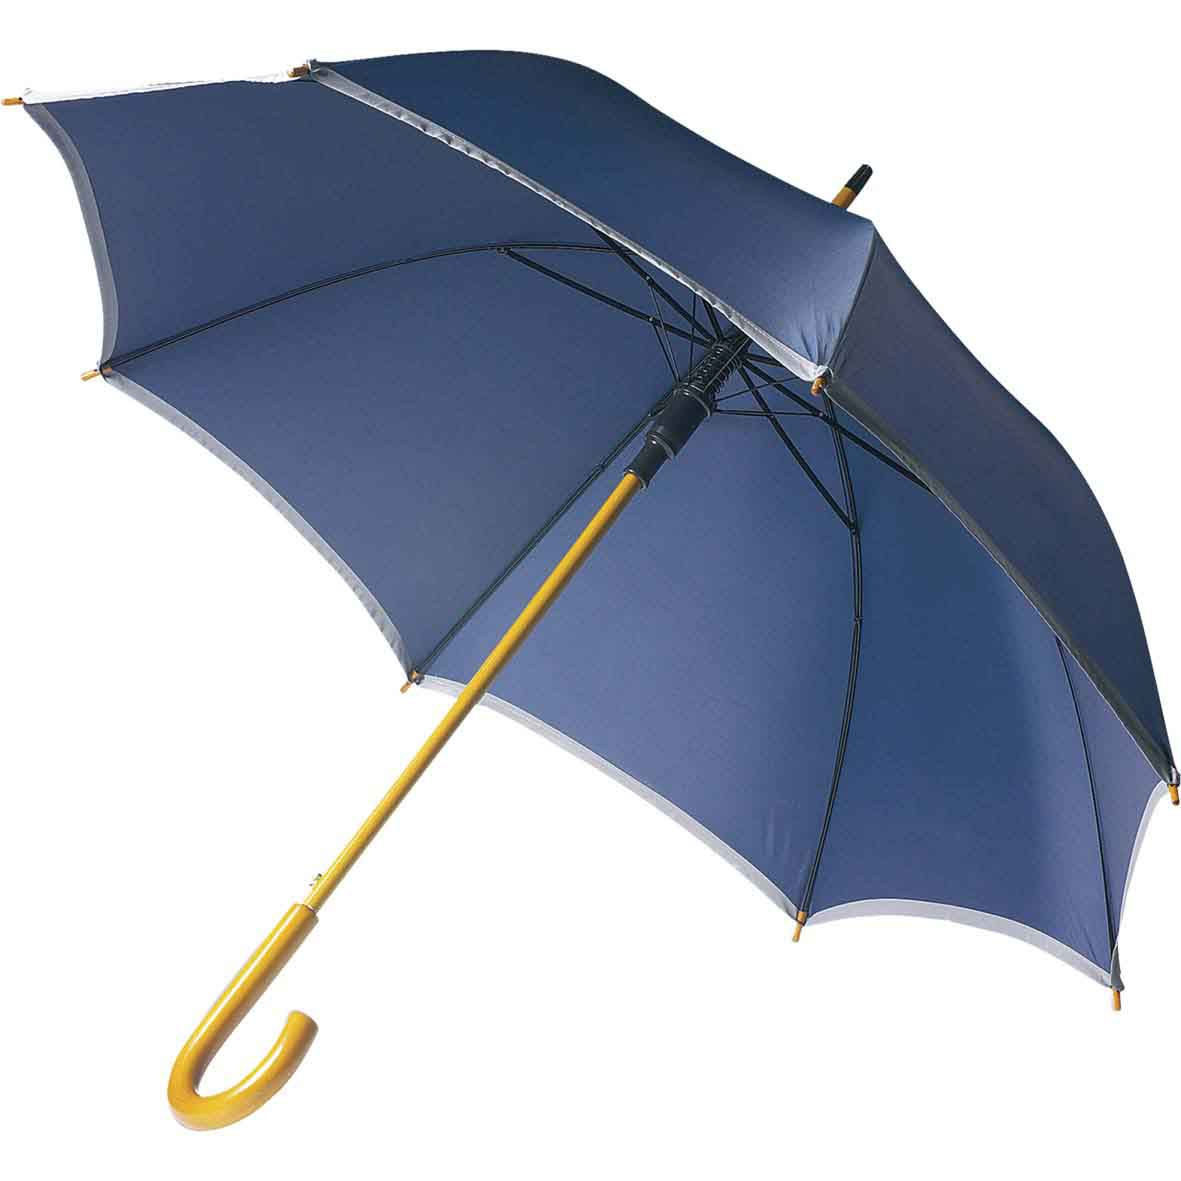 Automatic polyester umbrella (190T) with a wooden shaft - Blue giv-406805